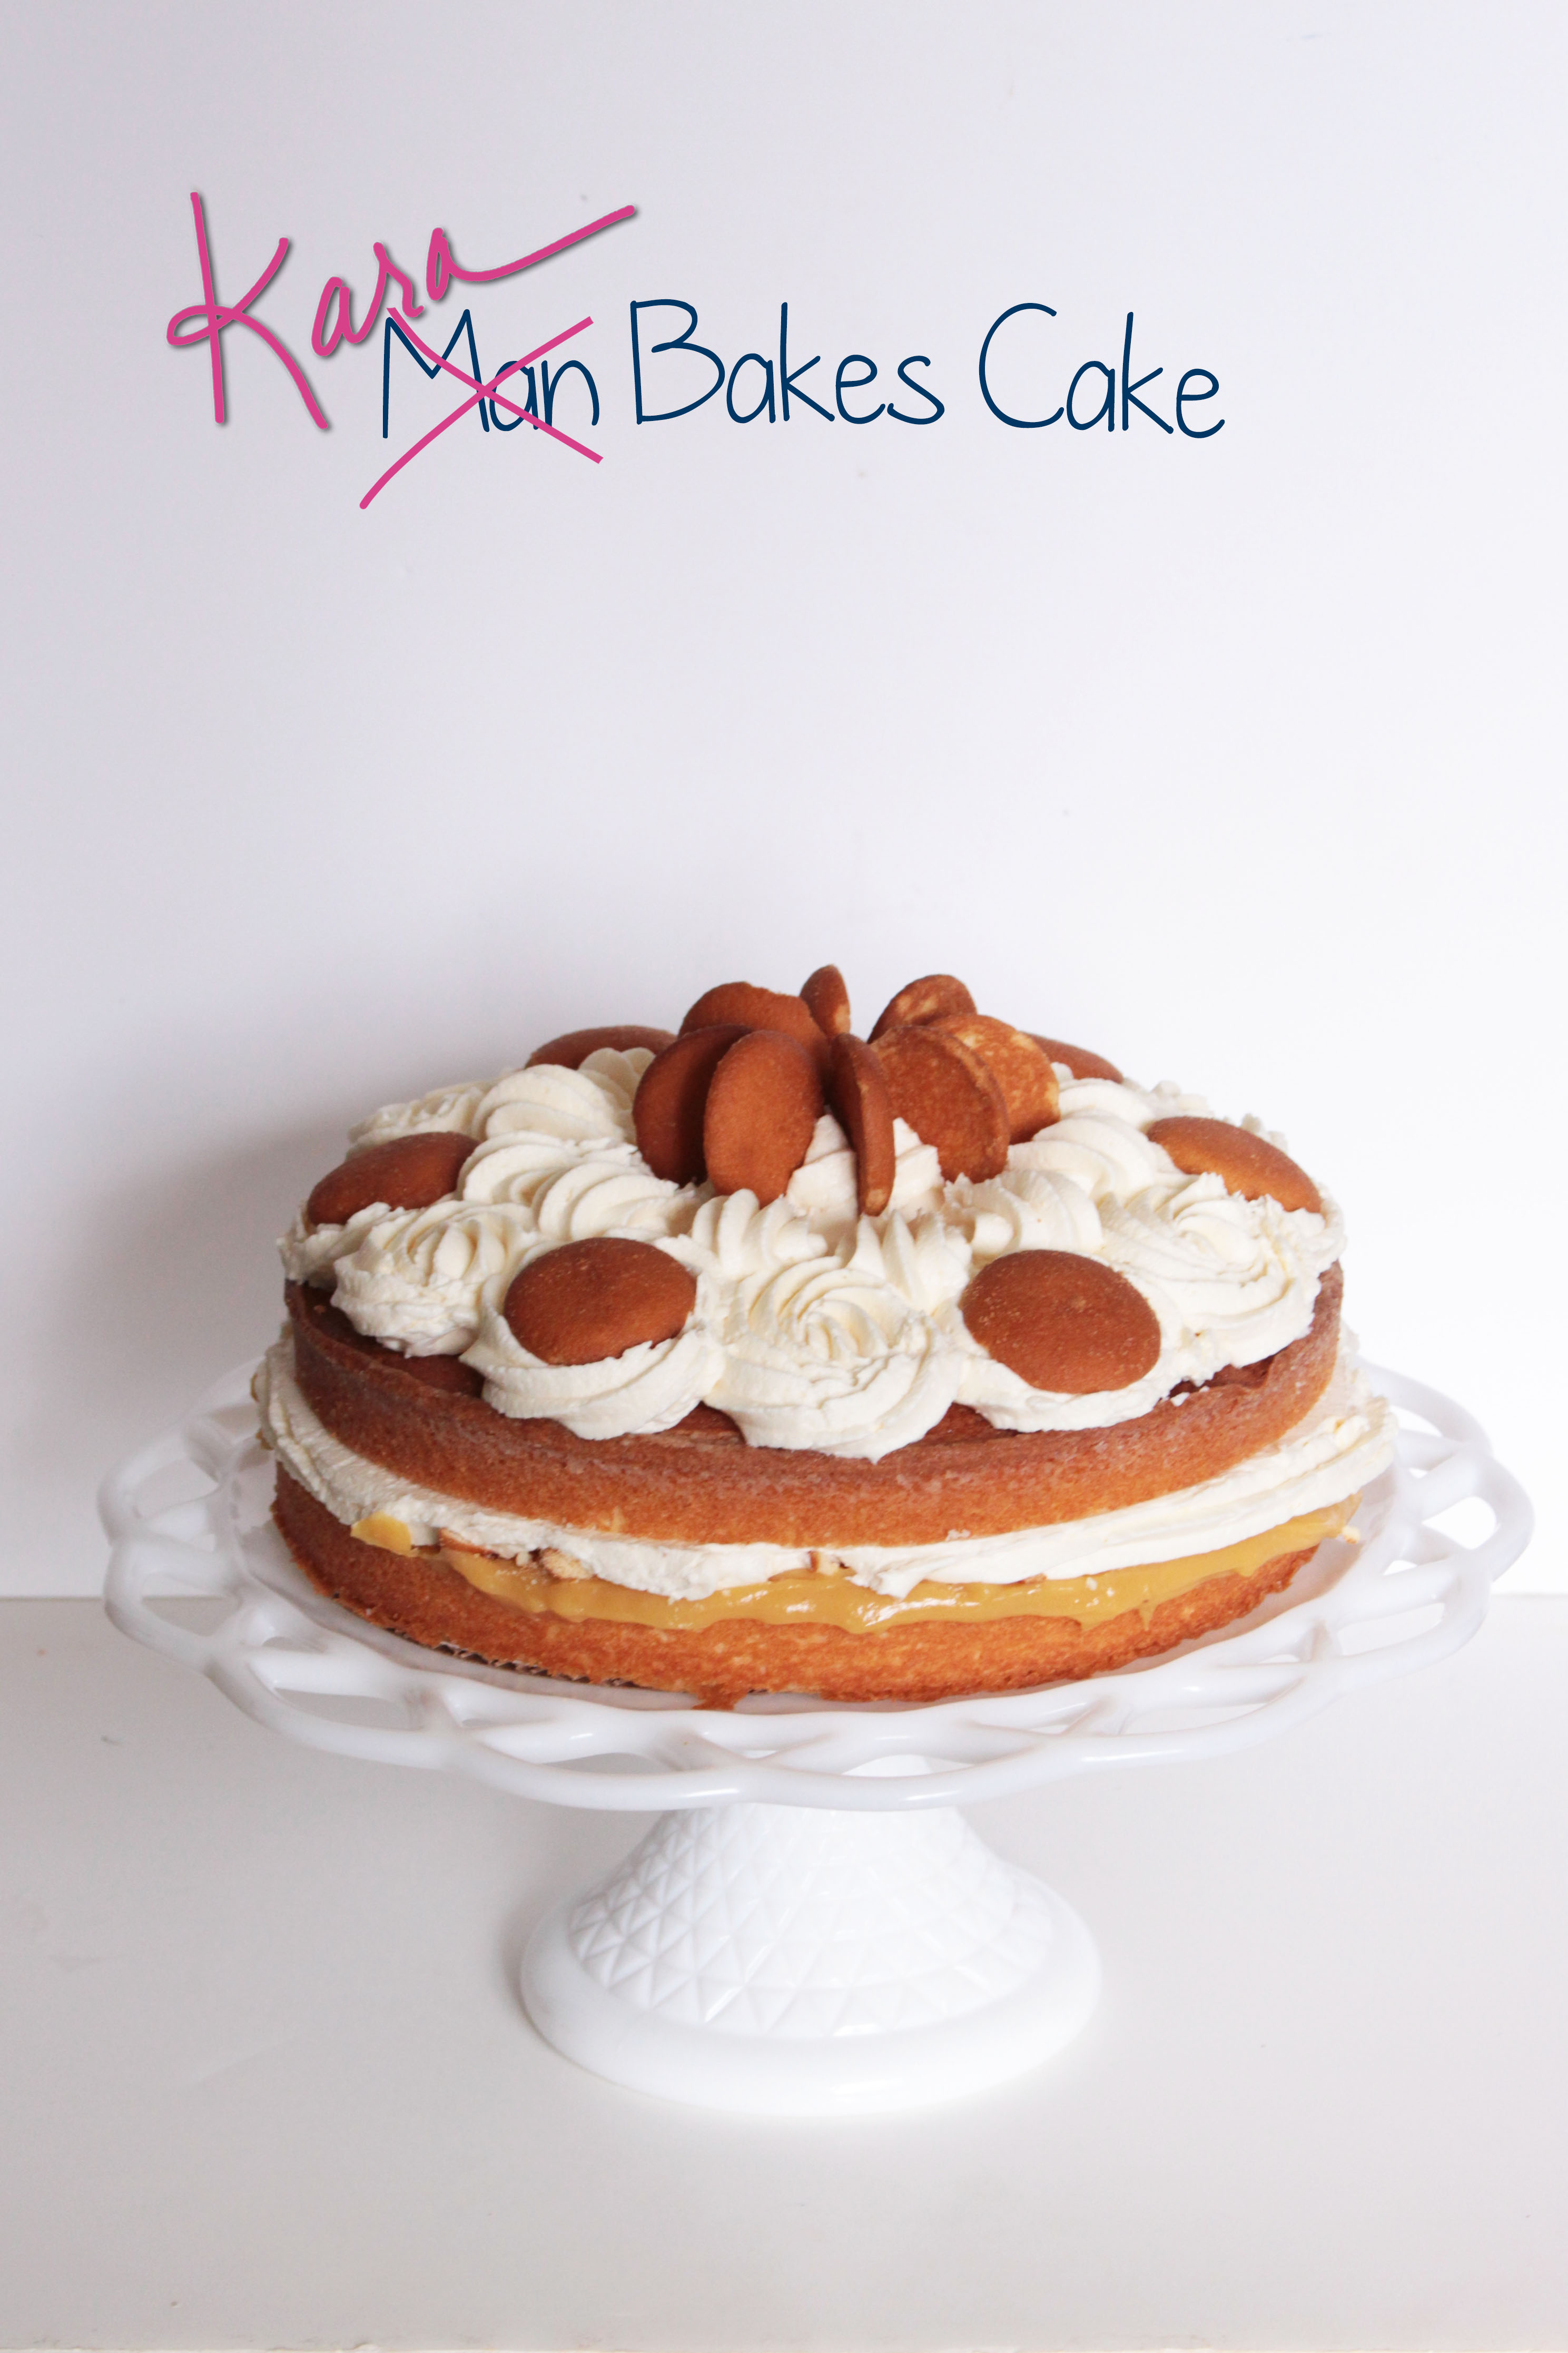 ... Pudding Cake recipe I made when I manned Man Bakes Cake for a day